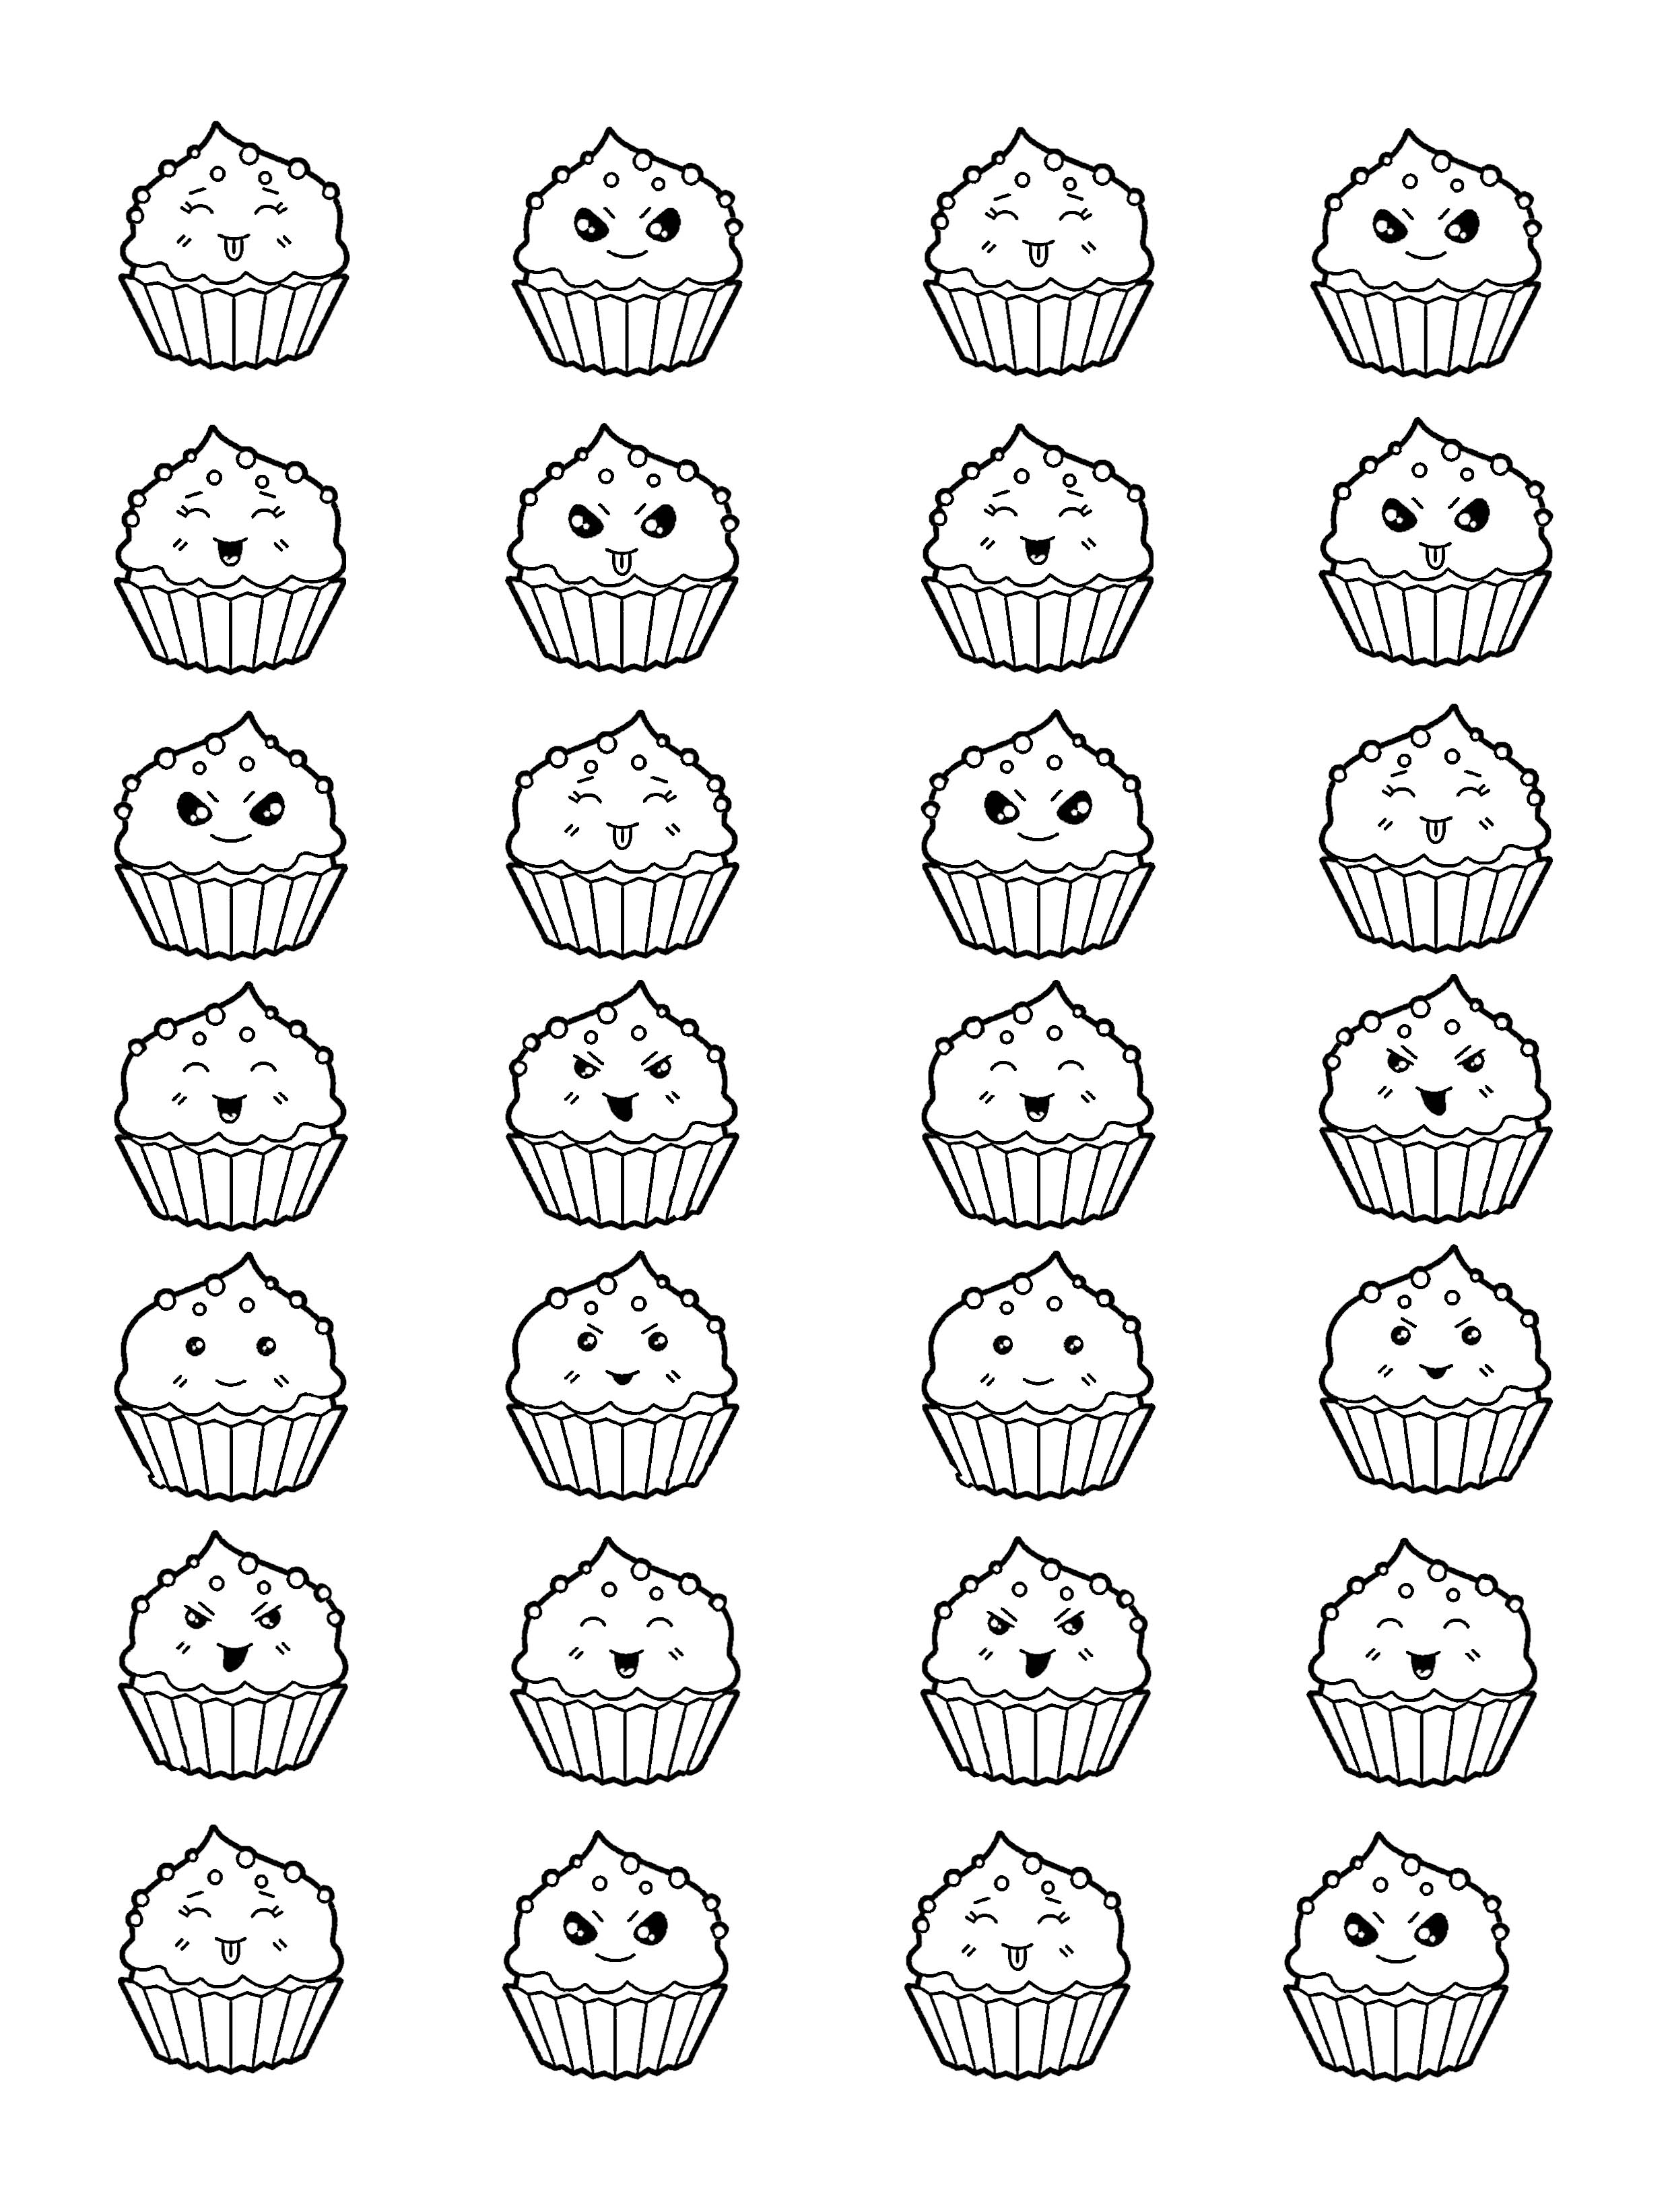 Cup cakes 93040